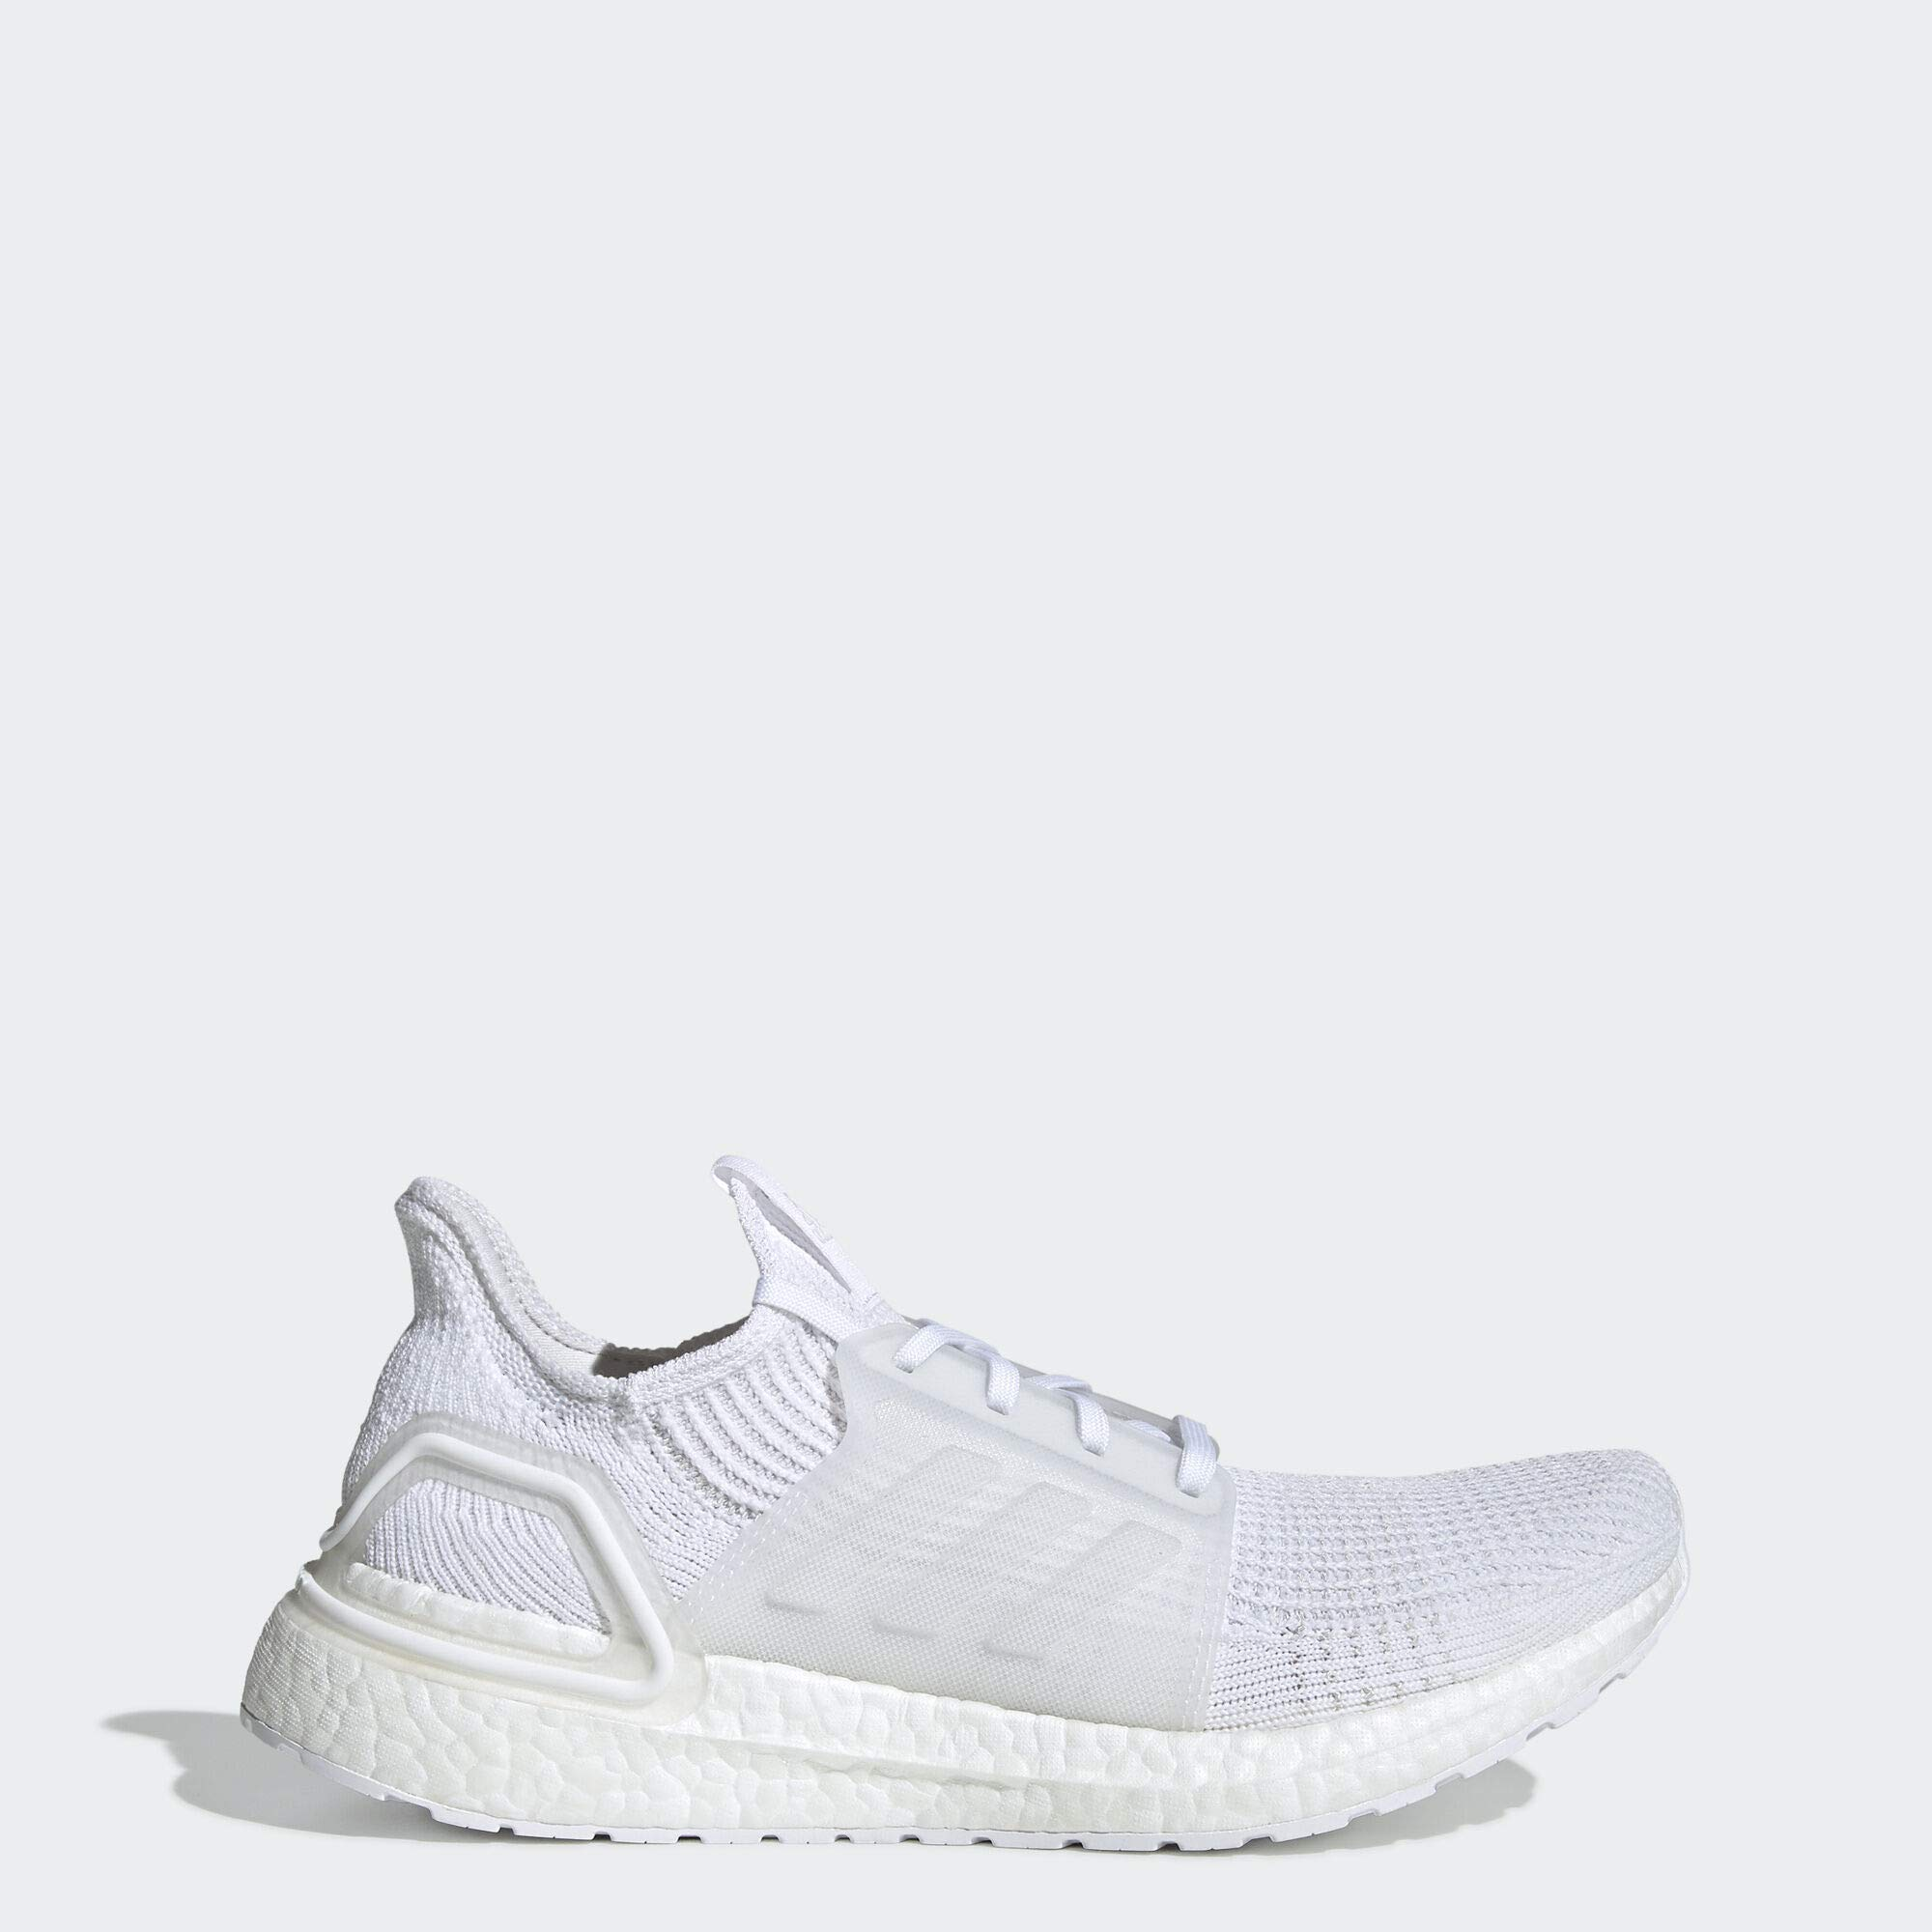 adidas Ultraboost 19 Shoes Men's by adidas